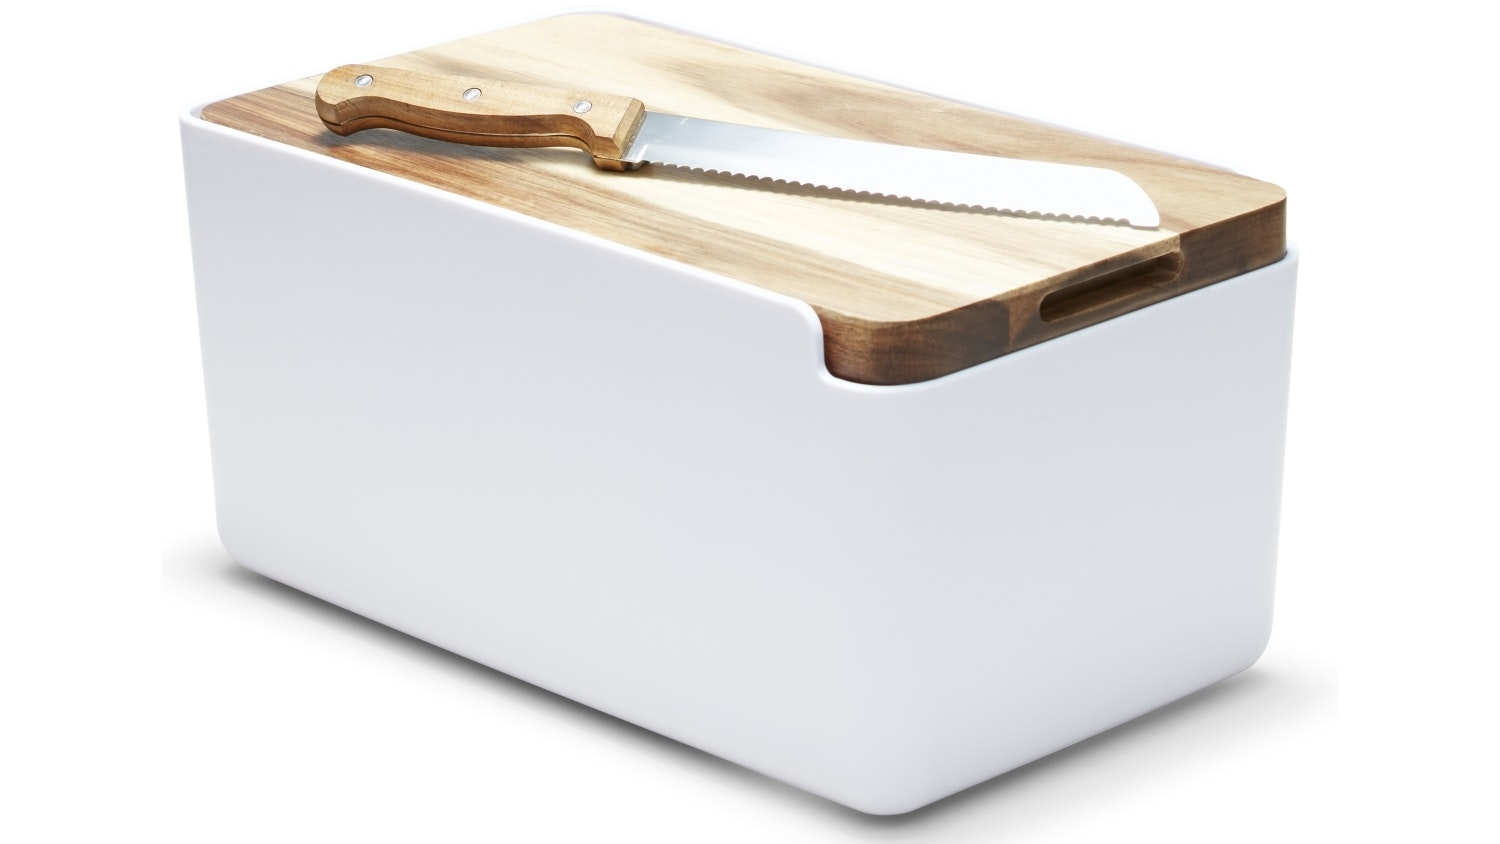 Salt & Pepper Hudson Bread Bin - White